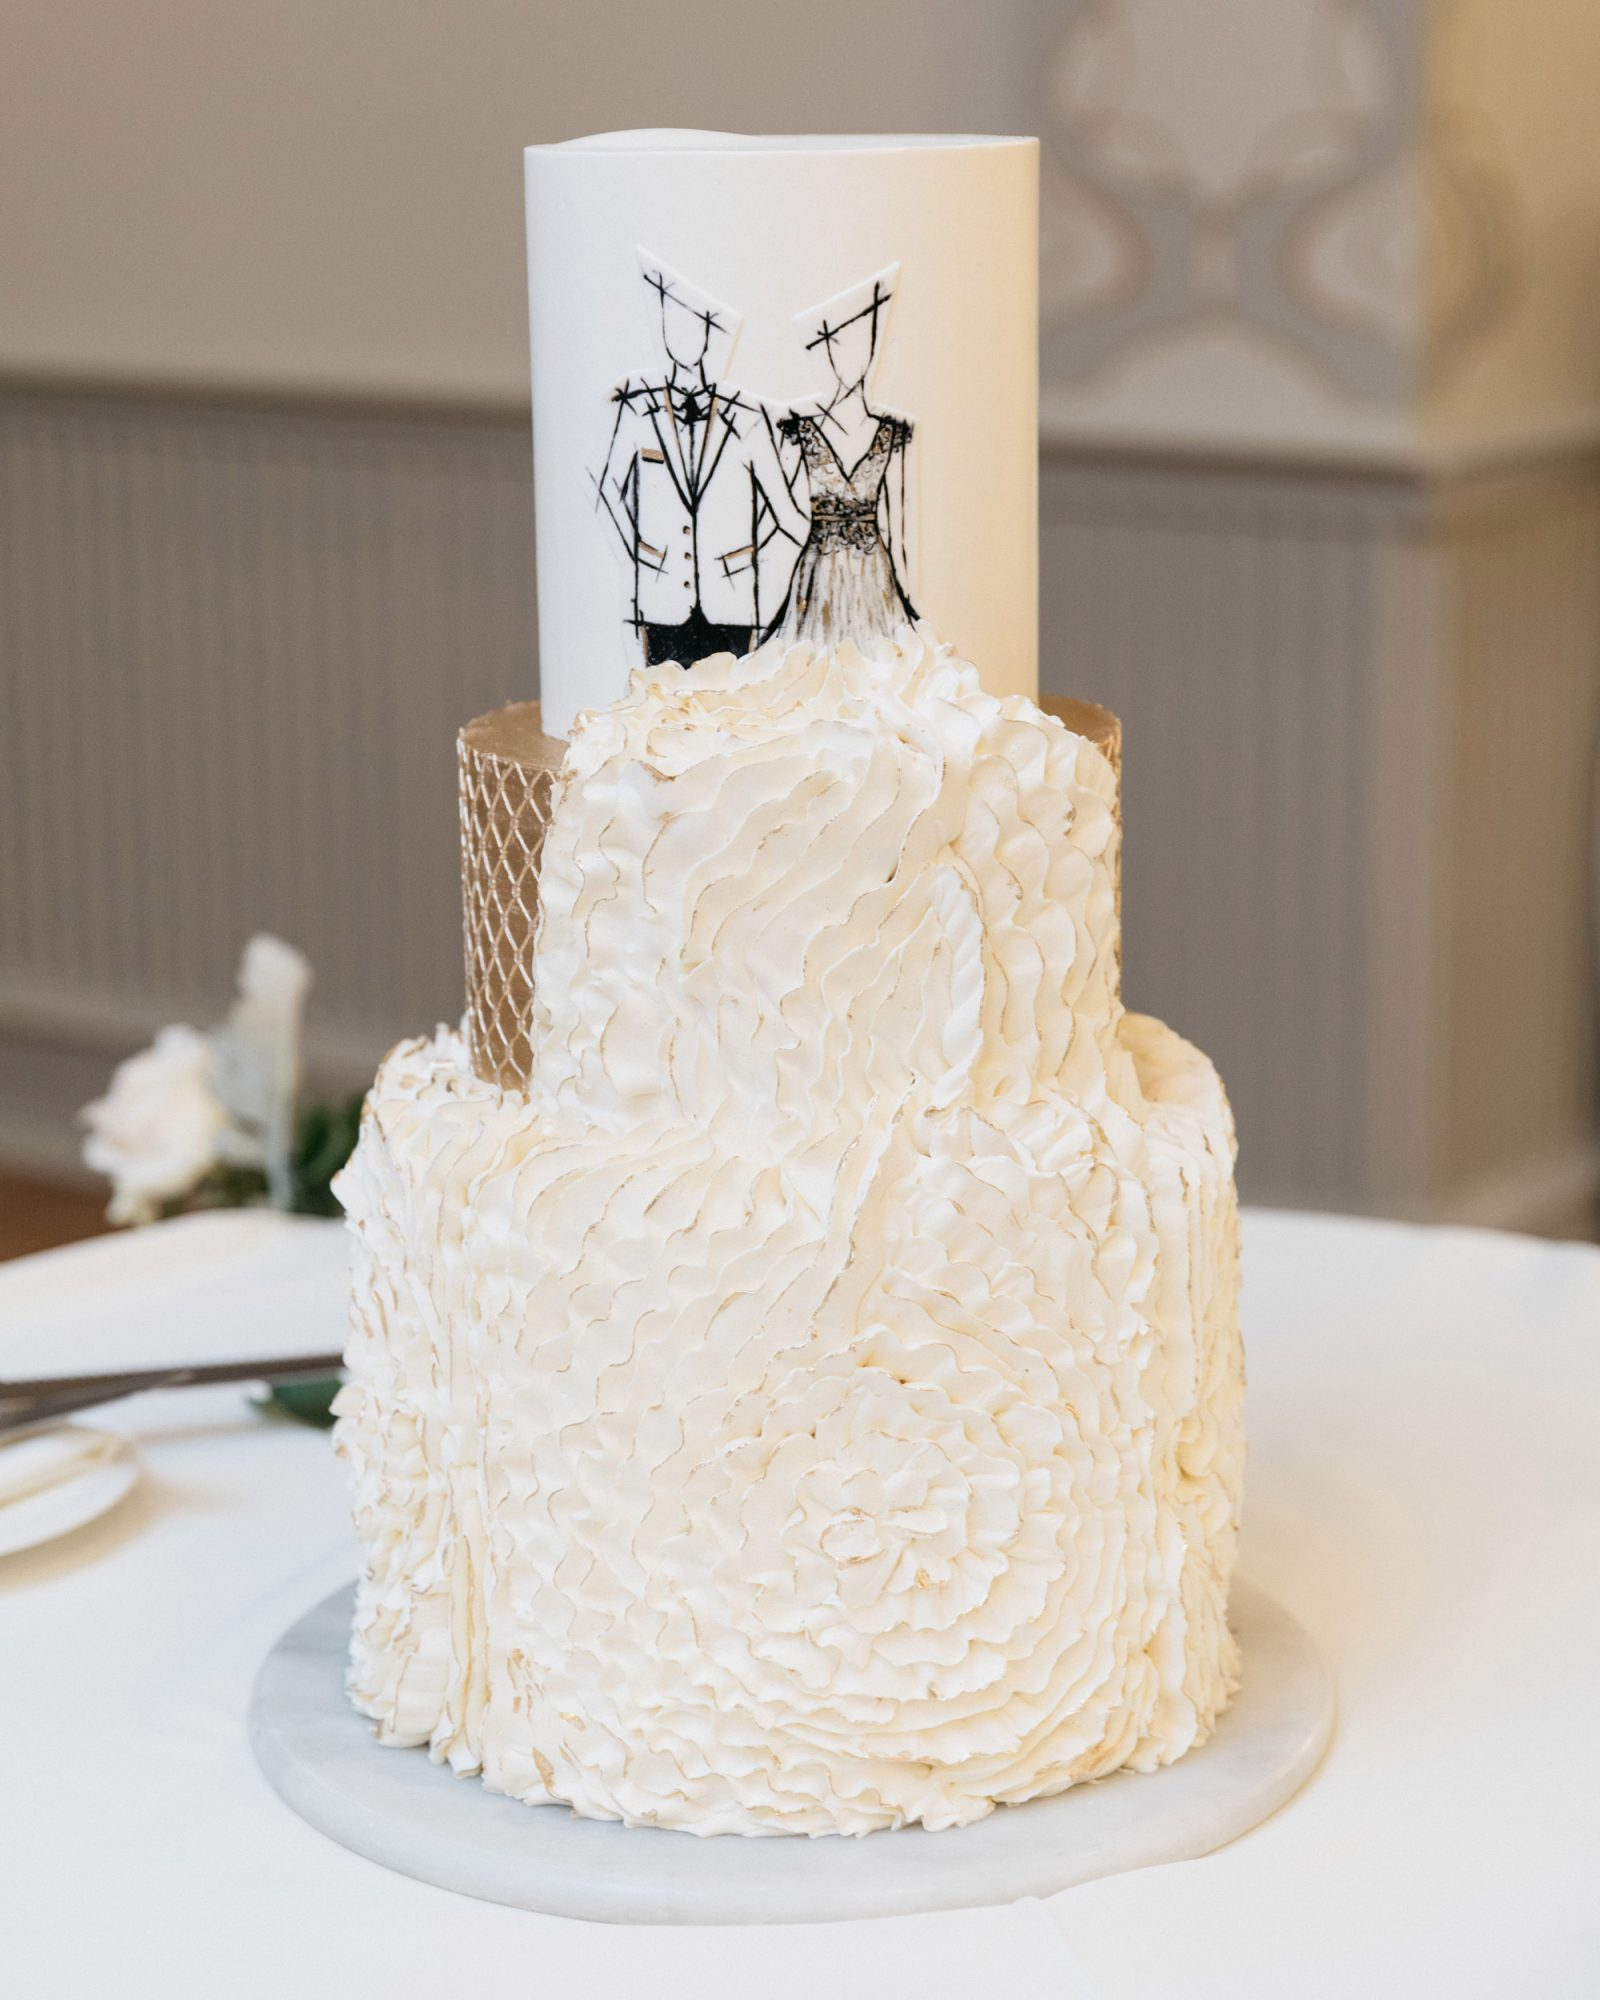 3-tiered wedding cake textured white frosting copper accent illustration top